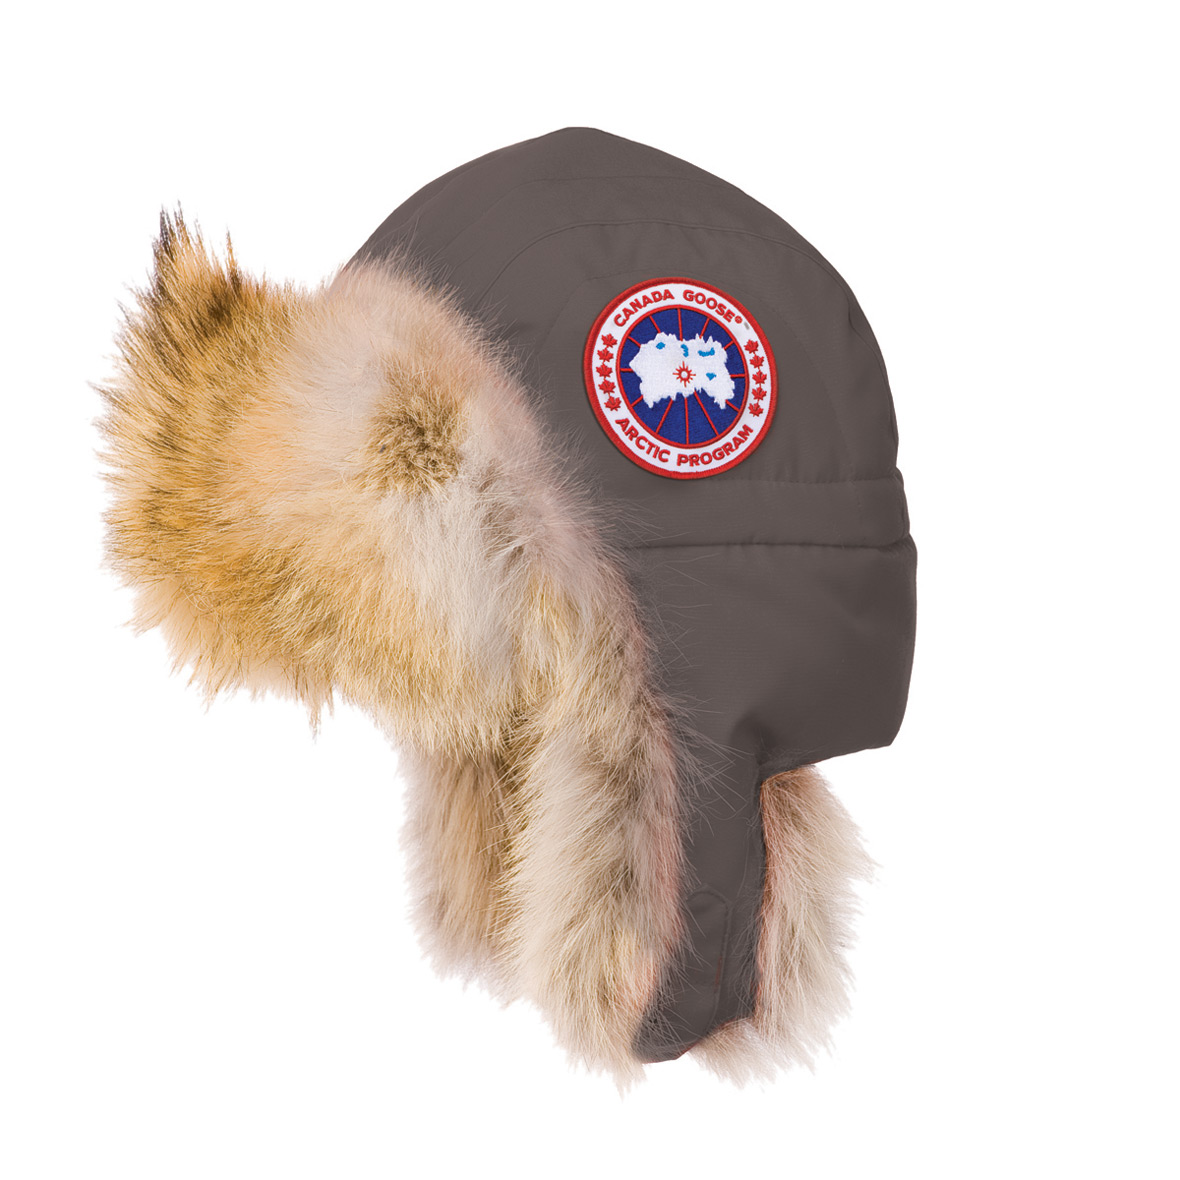 Canada Goose Unisex Aviator Hat MID GREY For Men